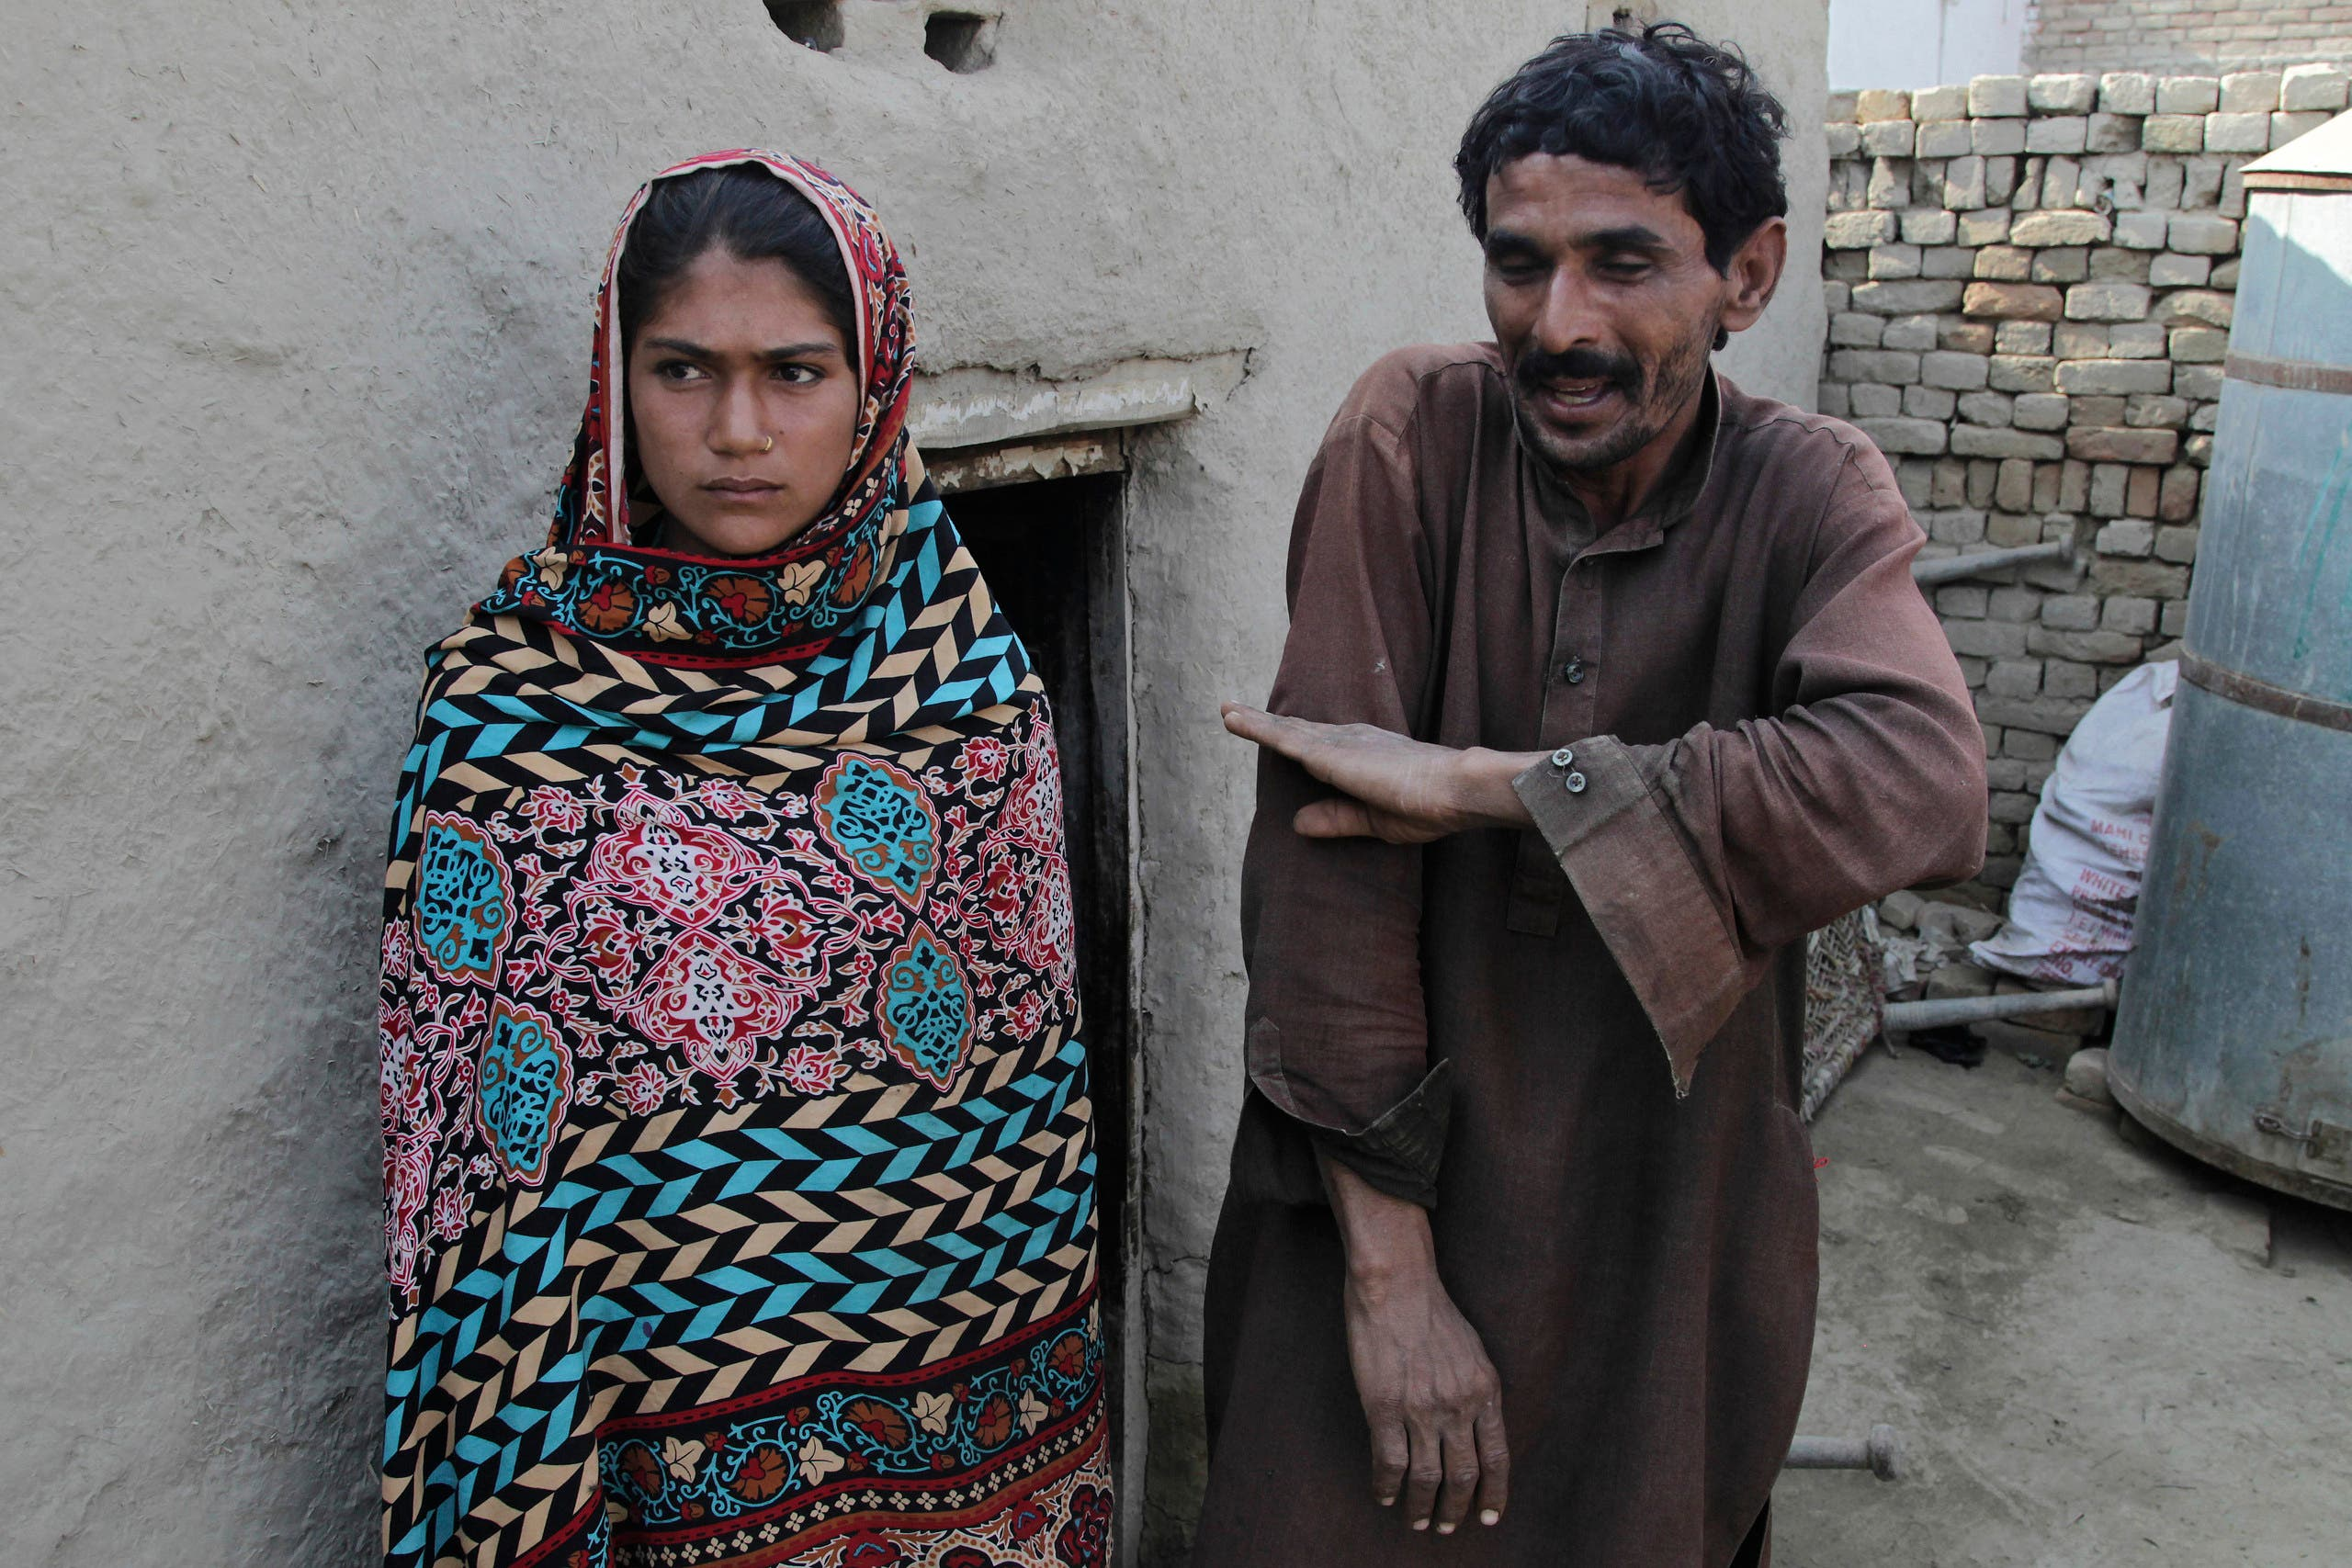 Mohammad Ramzan points out the height of his young bride Saima, left, when she was married to him, in Jampur, Pakistan. (AP)